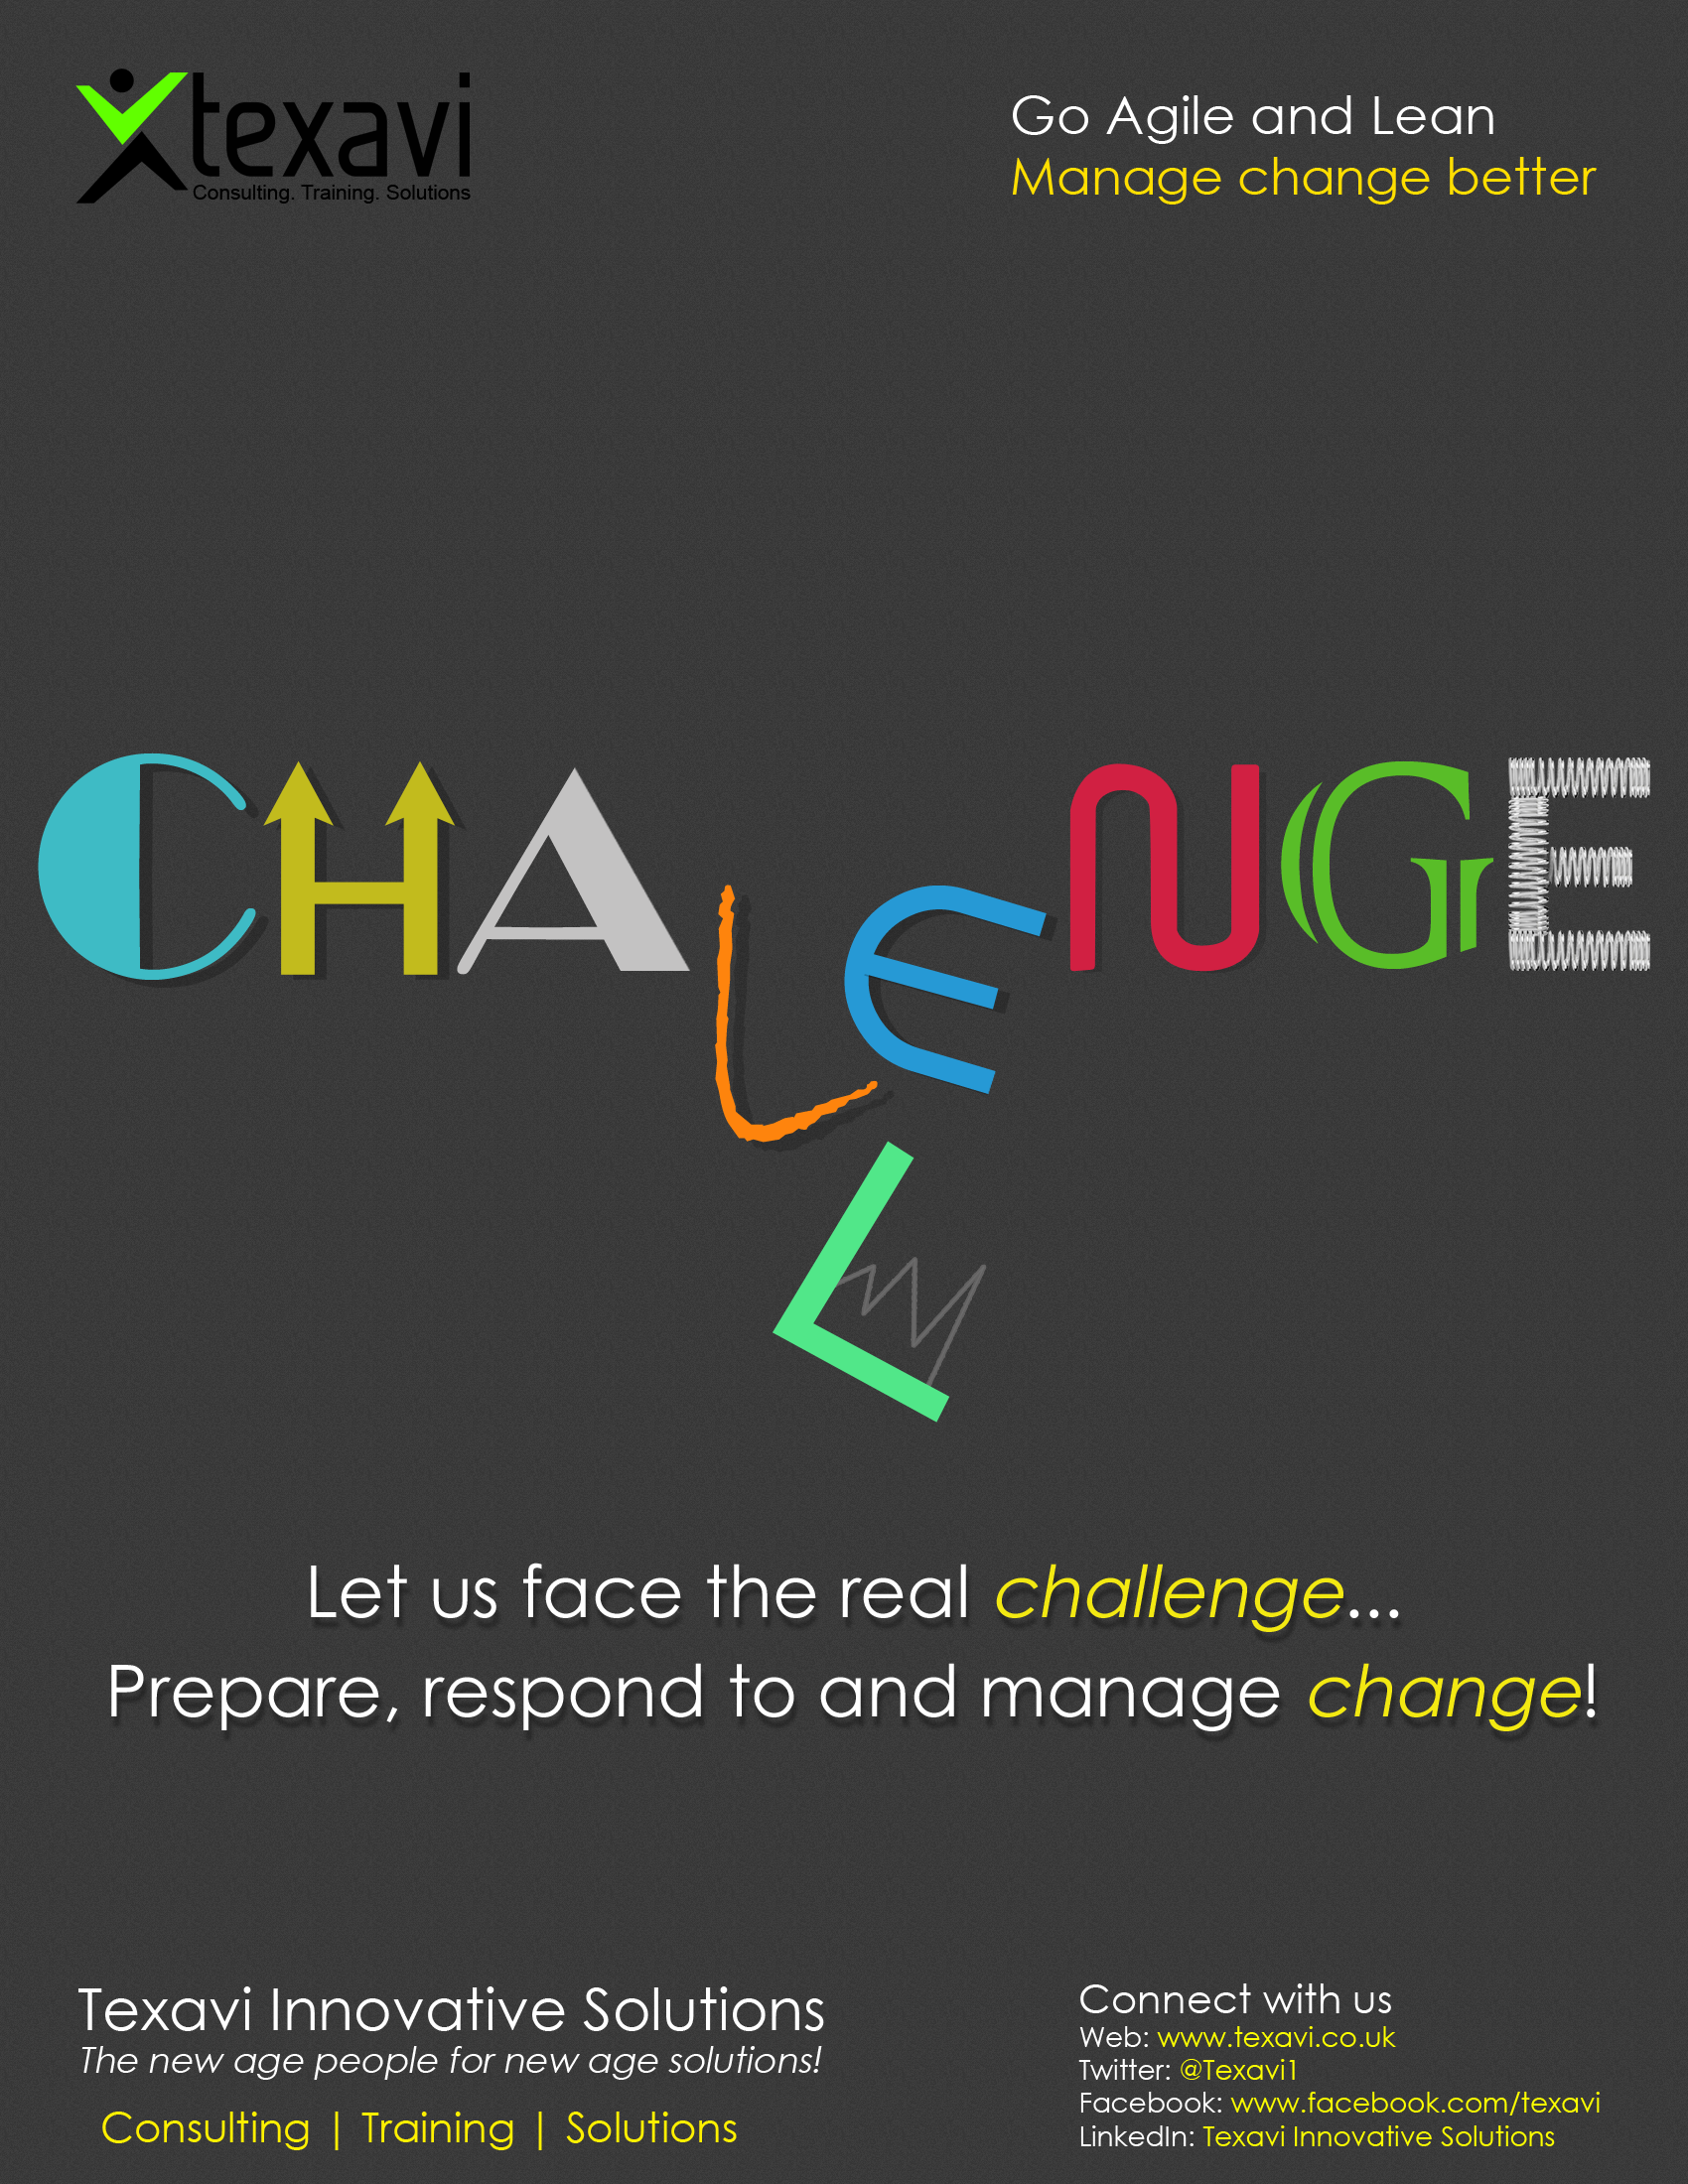 Go Agile and Lean - Manage change better